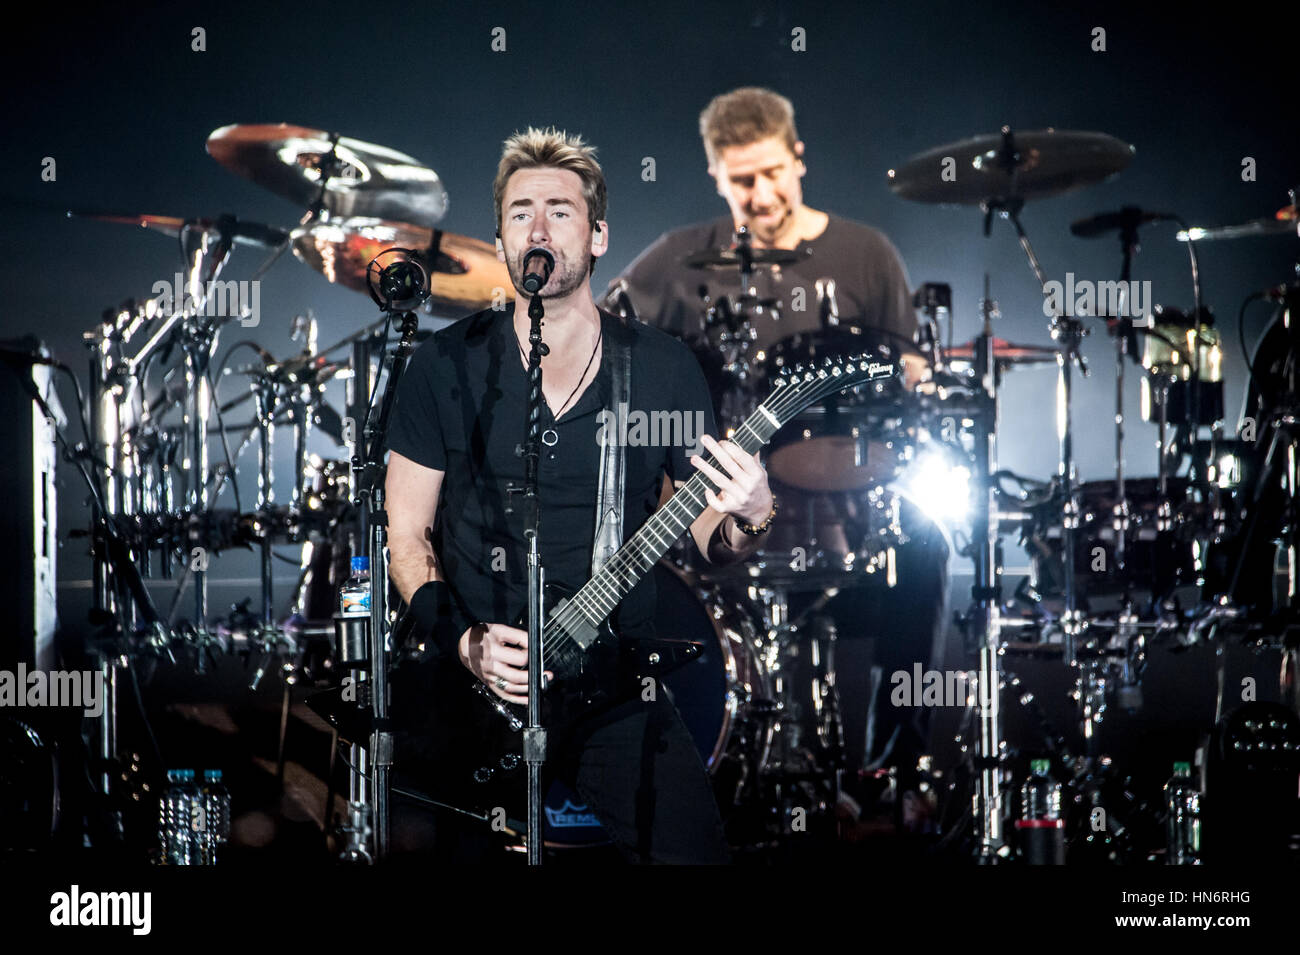 Nickelback live at Londons O2 Arena - Stock Image